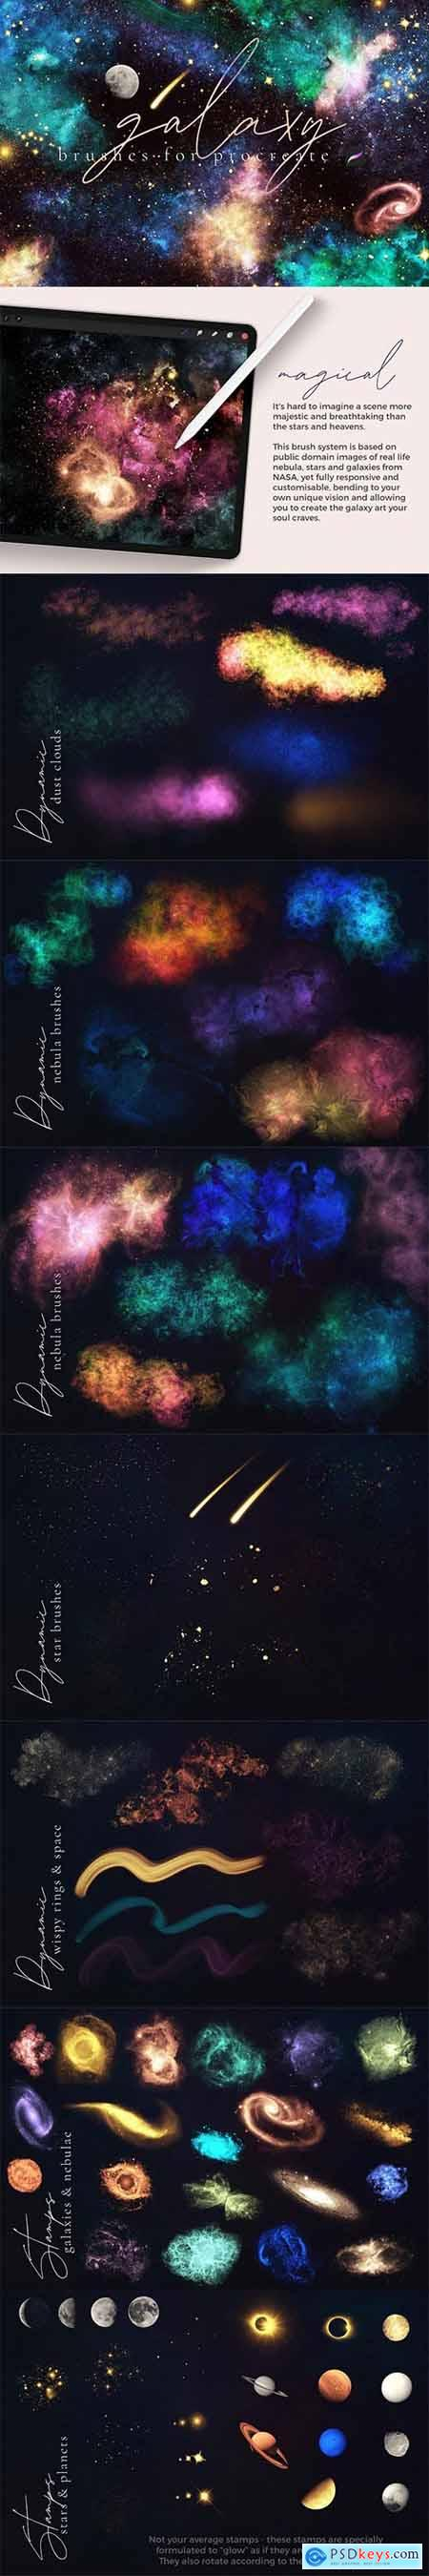 Galaxy Brushes for Procreate 5992272